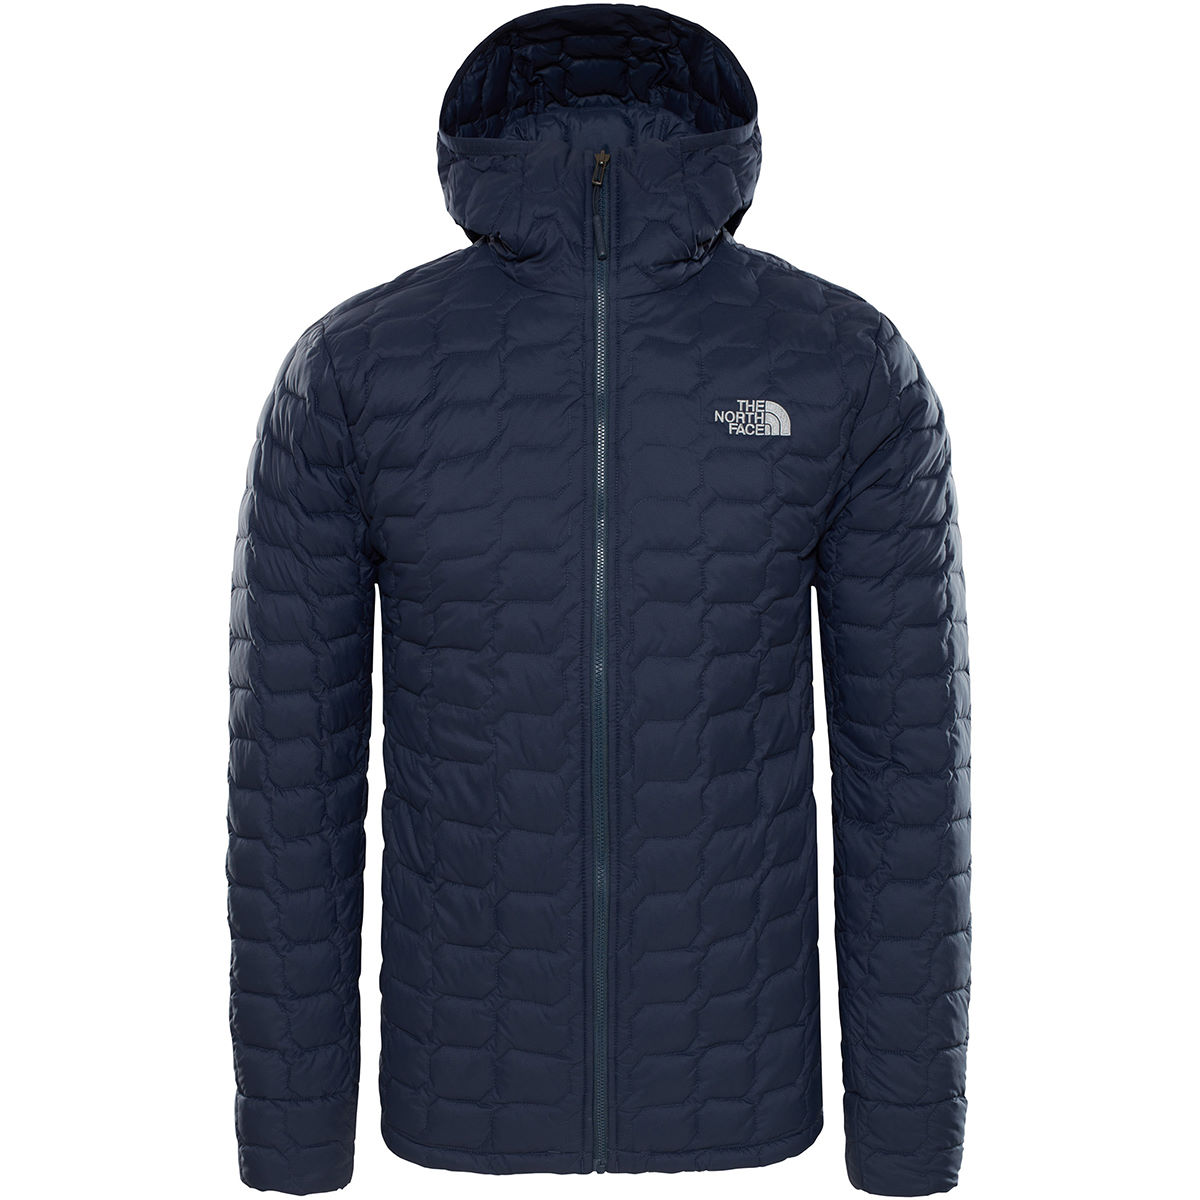 The North Face The North Face Thermoball Hoodie   Jackets